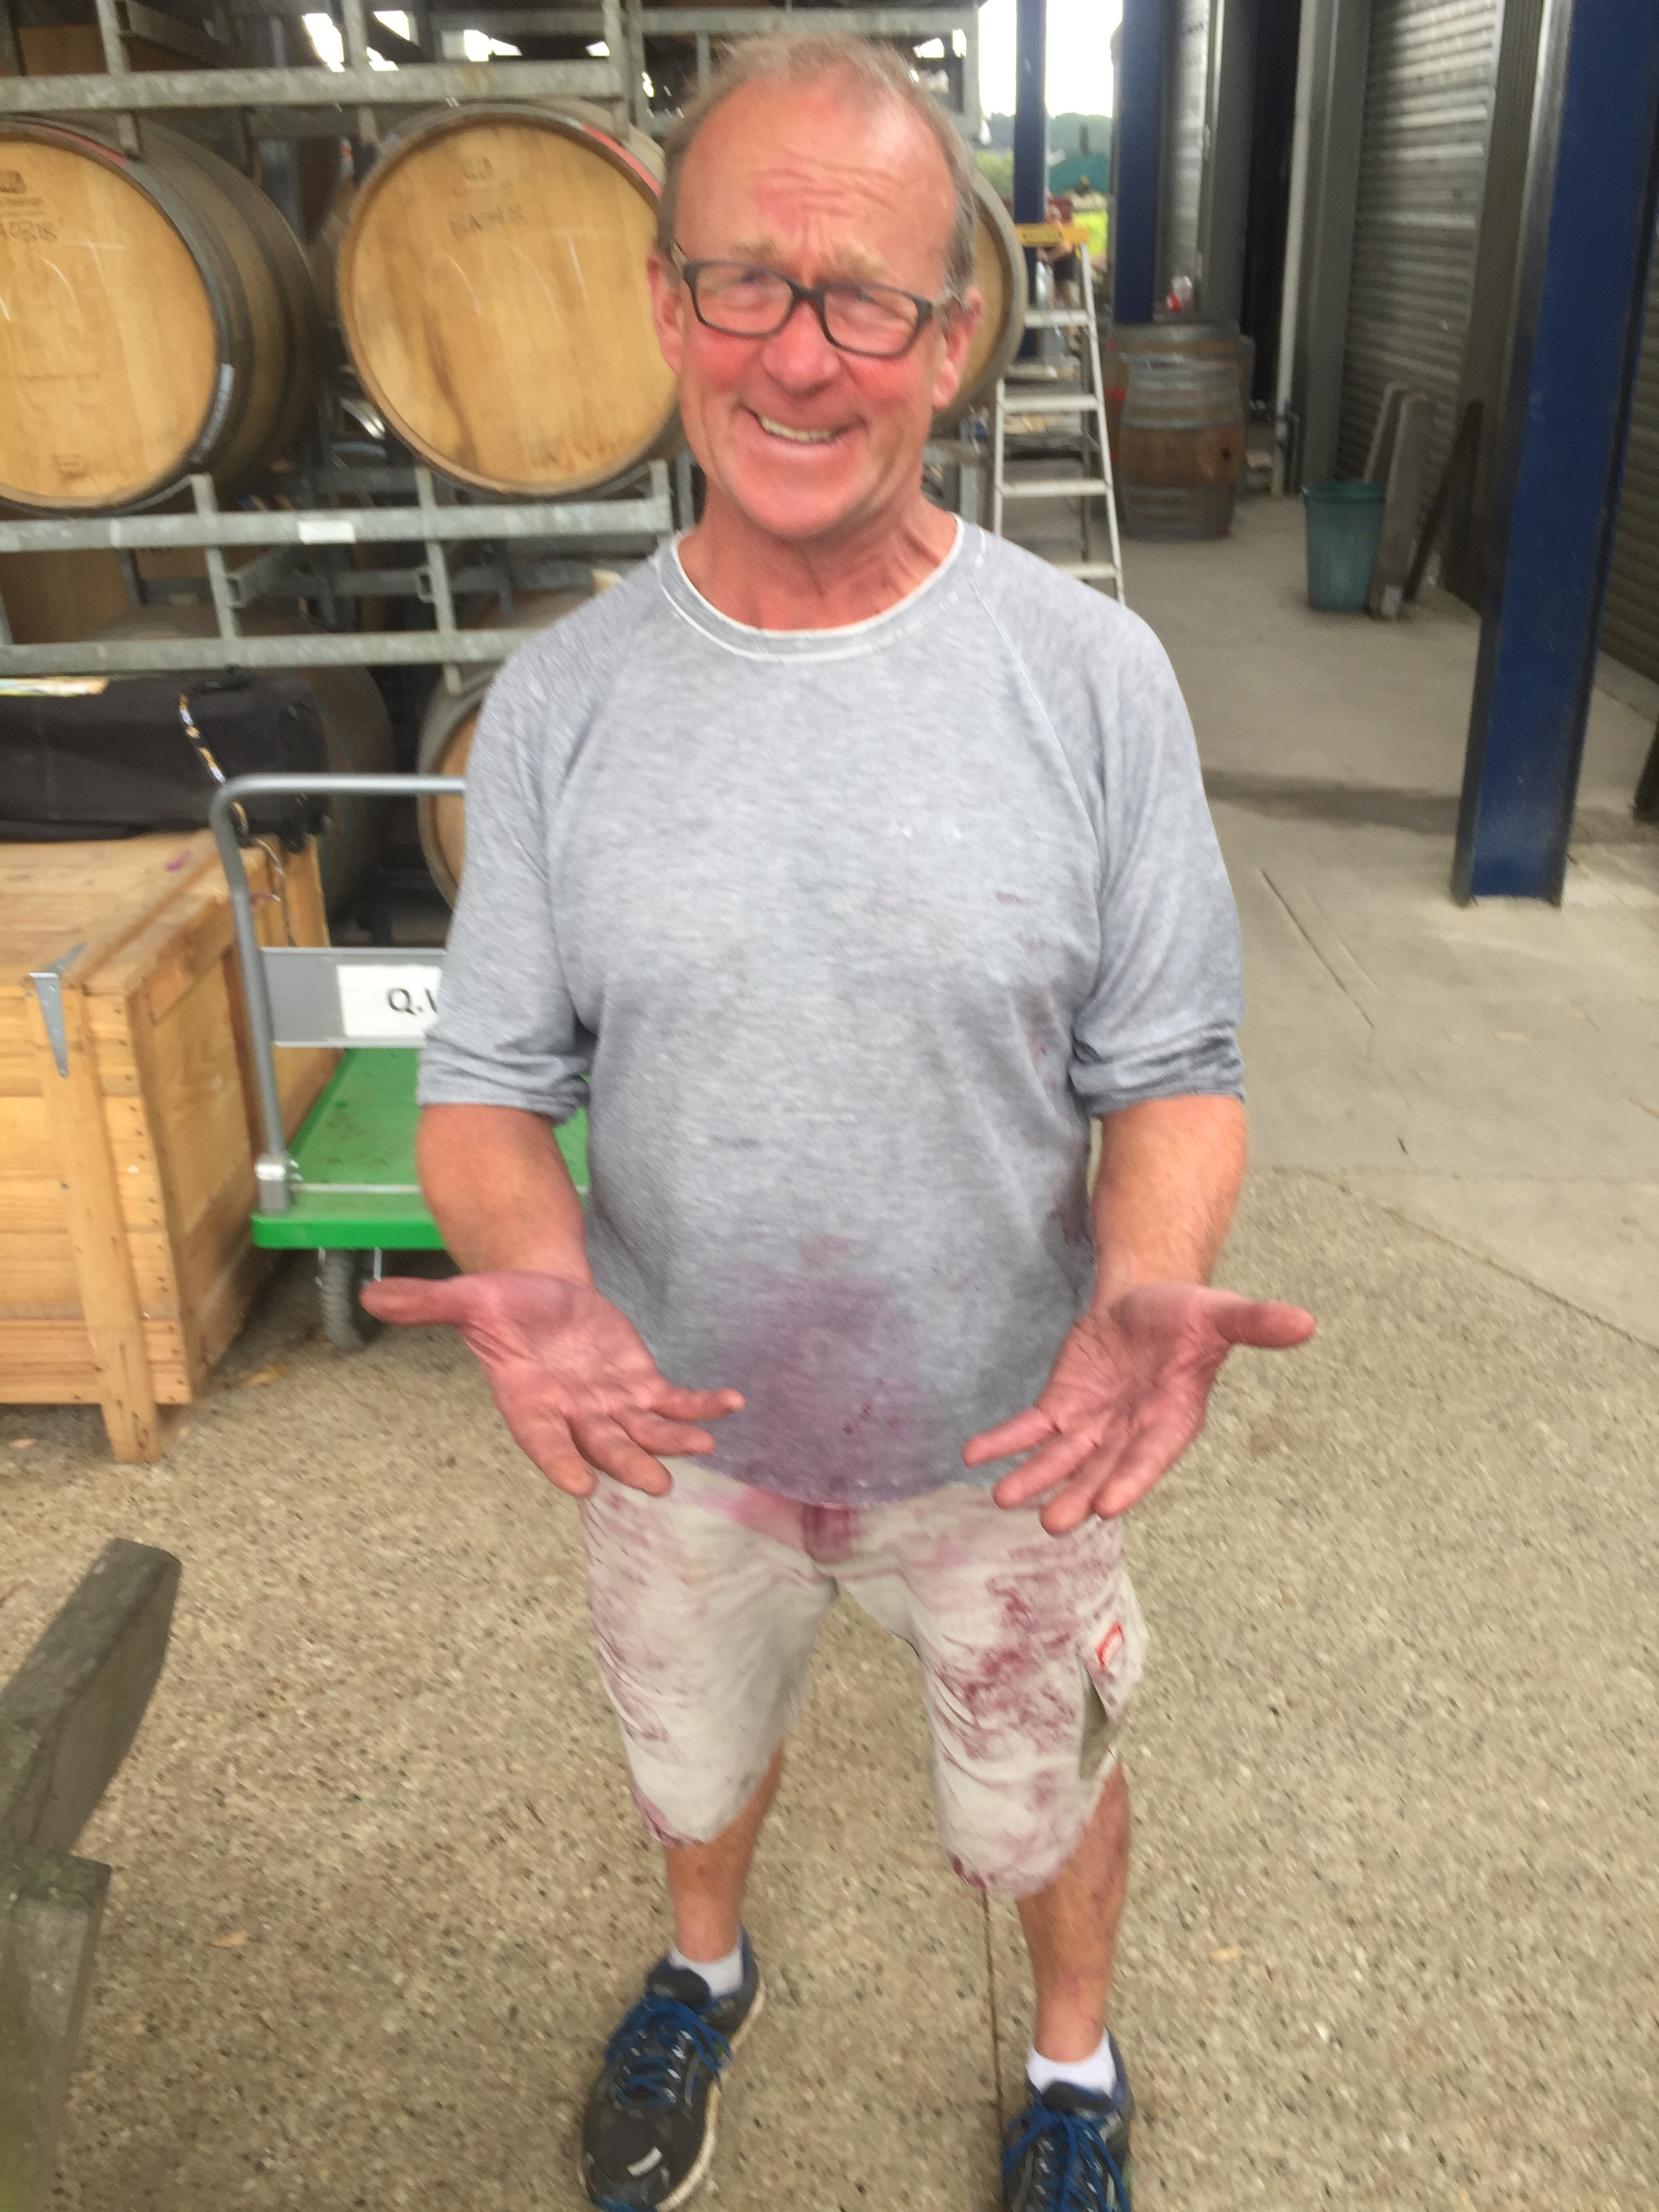 Kevin McCarthy, Winemaker at Quealy